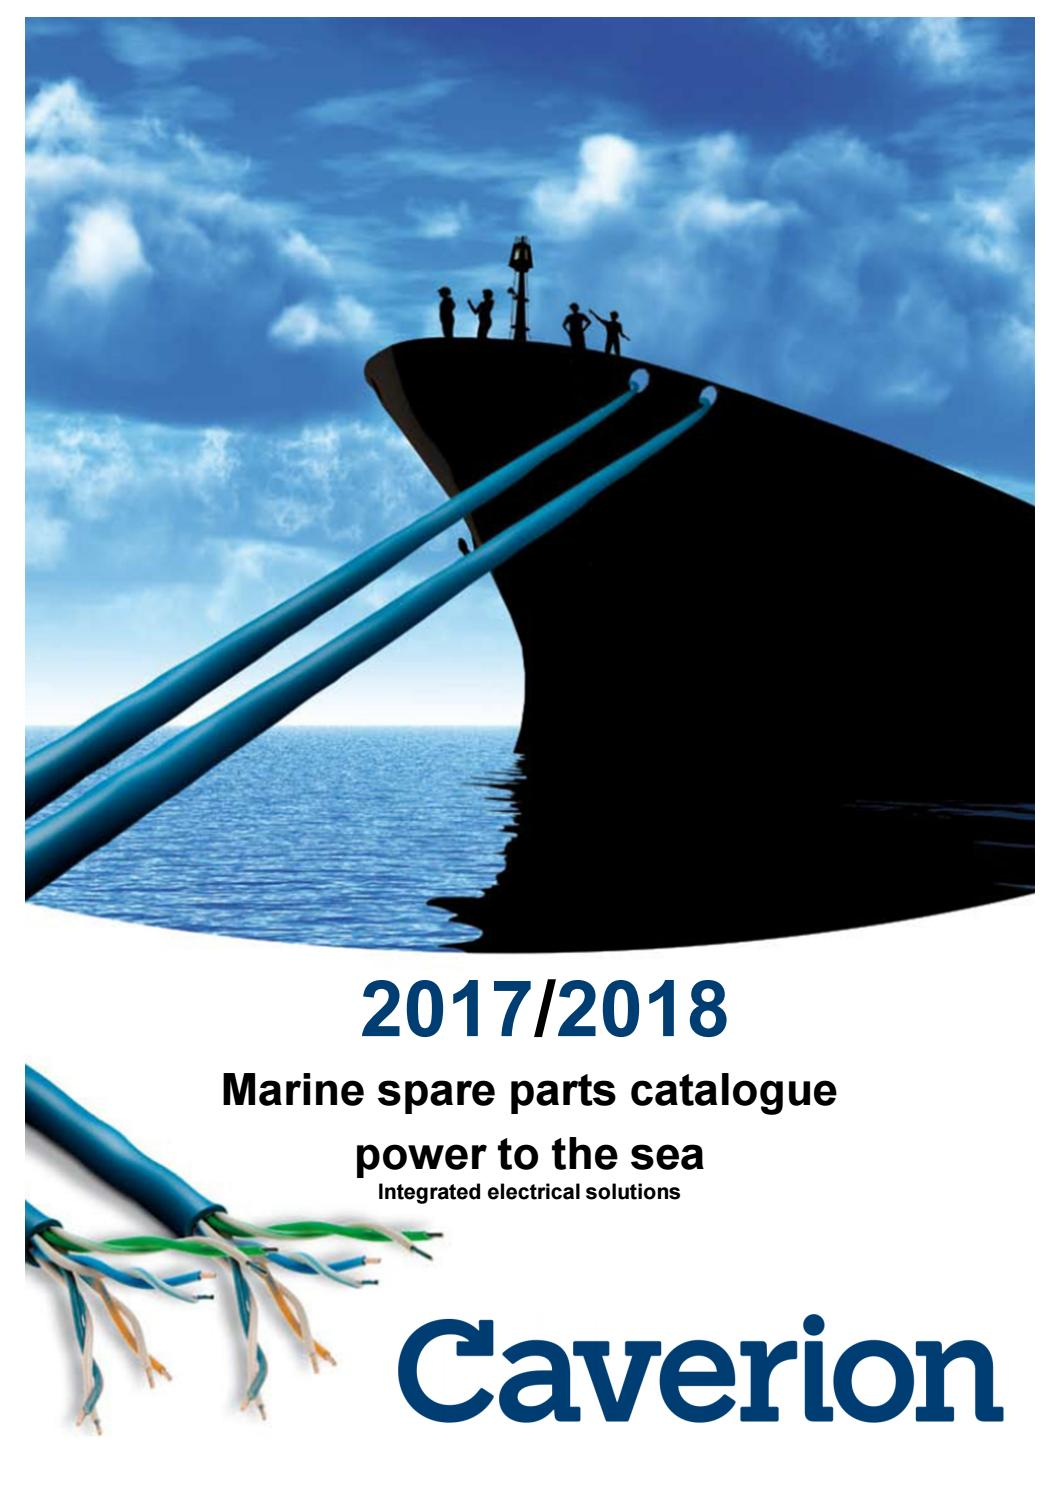 Exceptionnel Caverion Marine Catalogue 2017 / 2018 by Caverion Marine A/S - issuu OM47